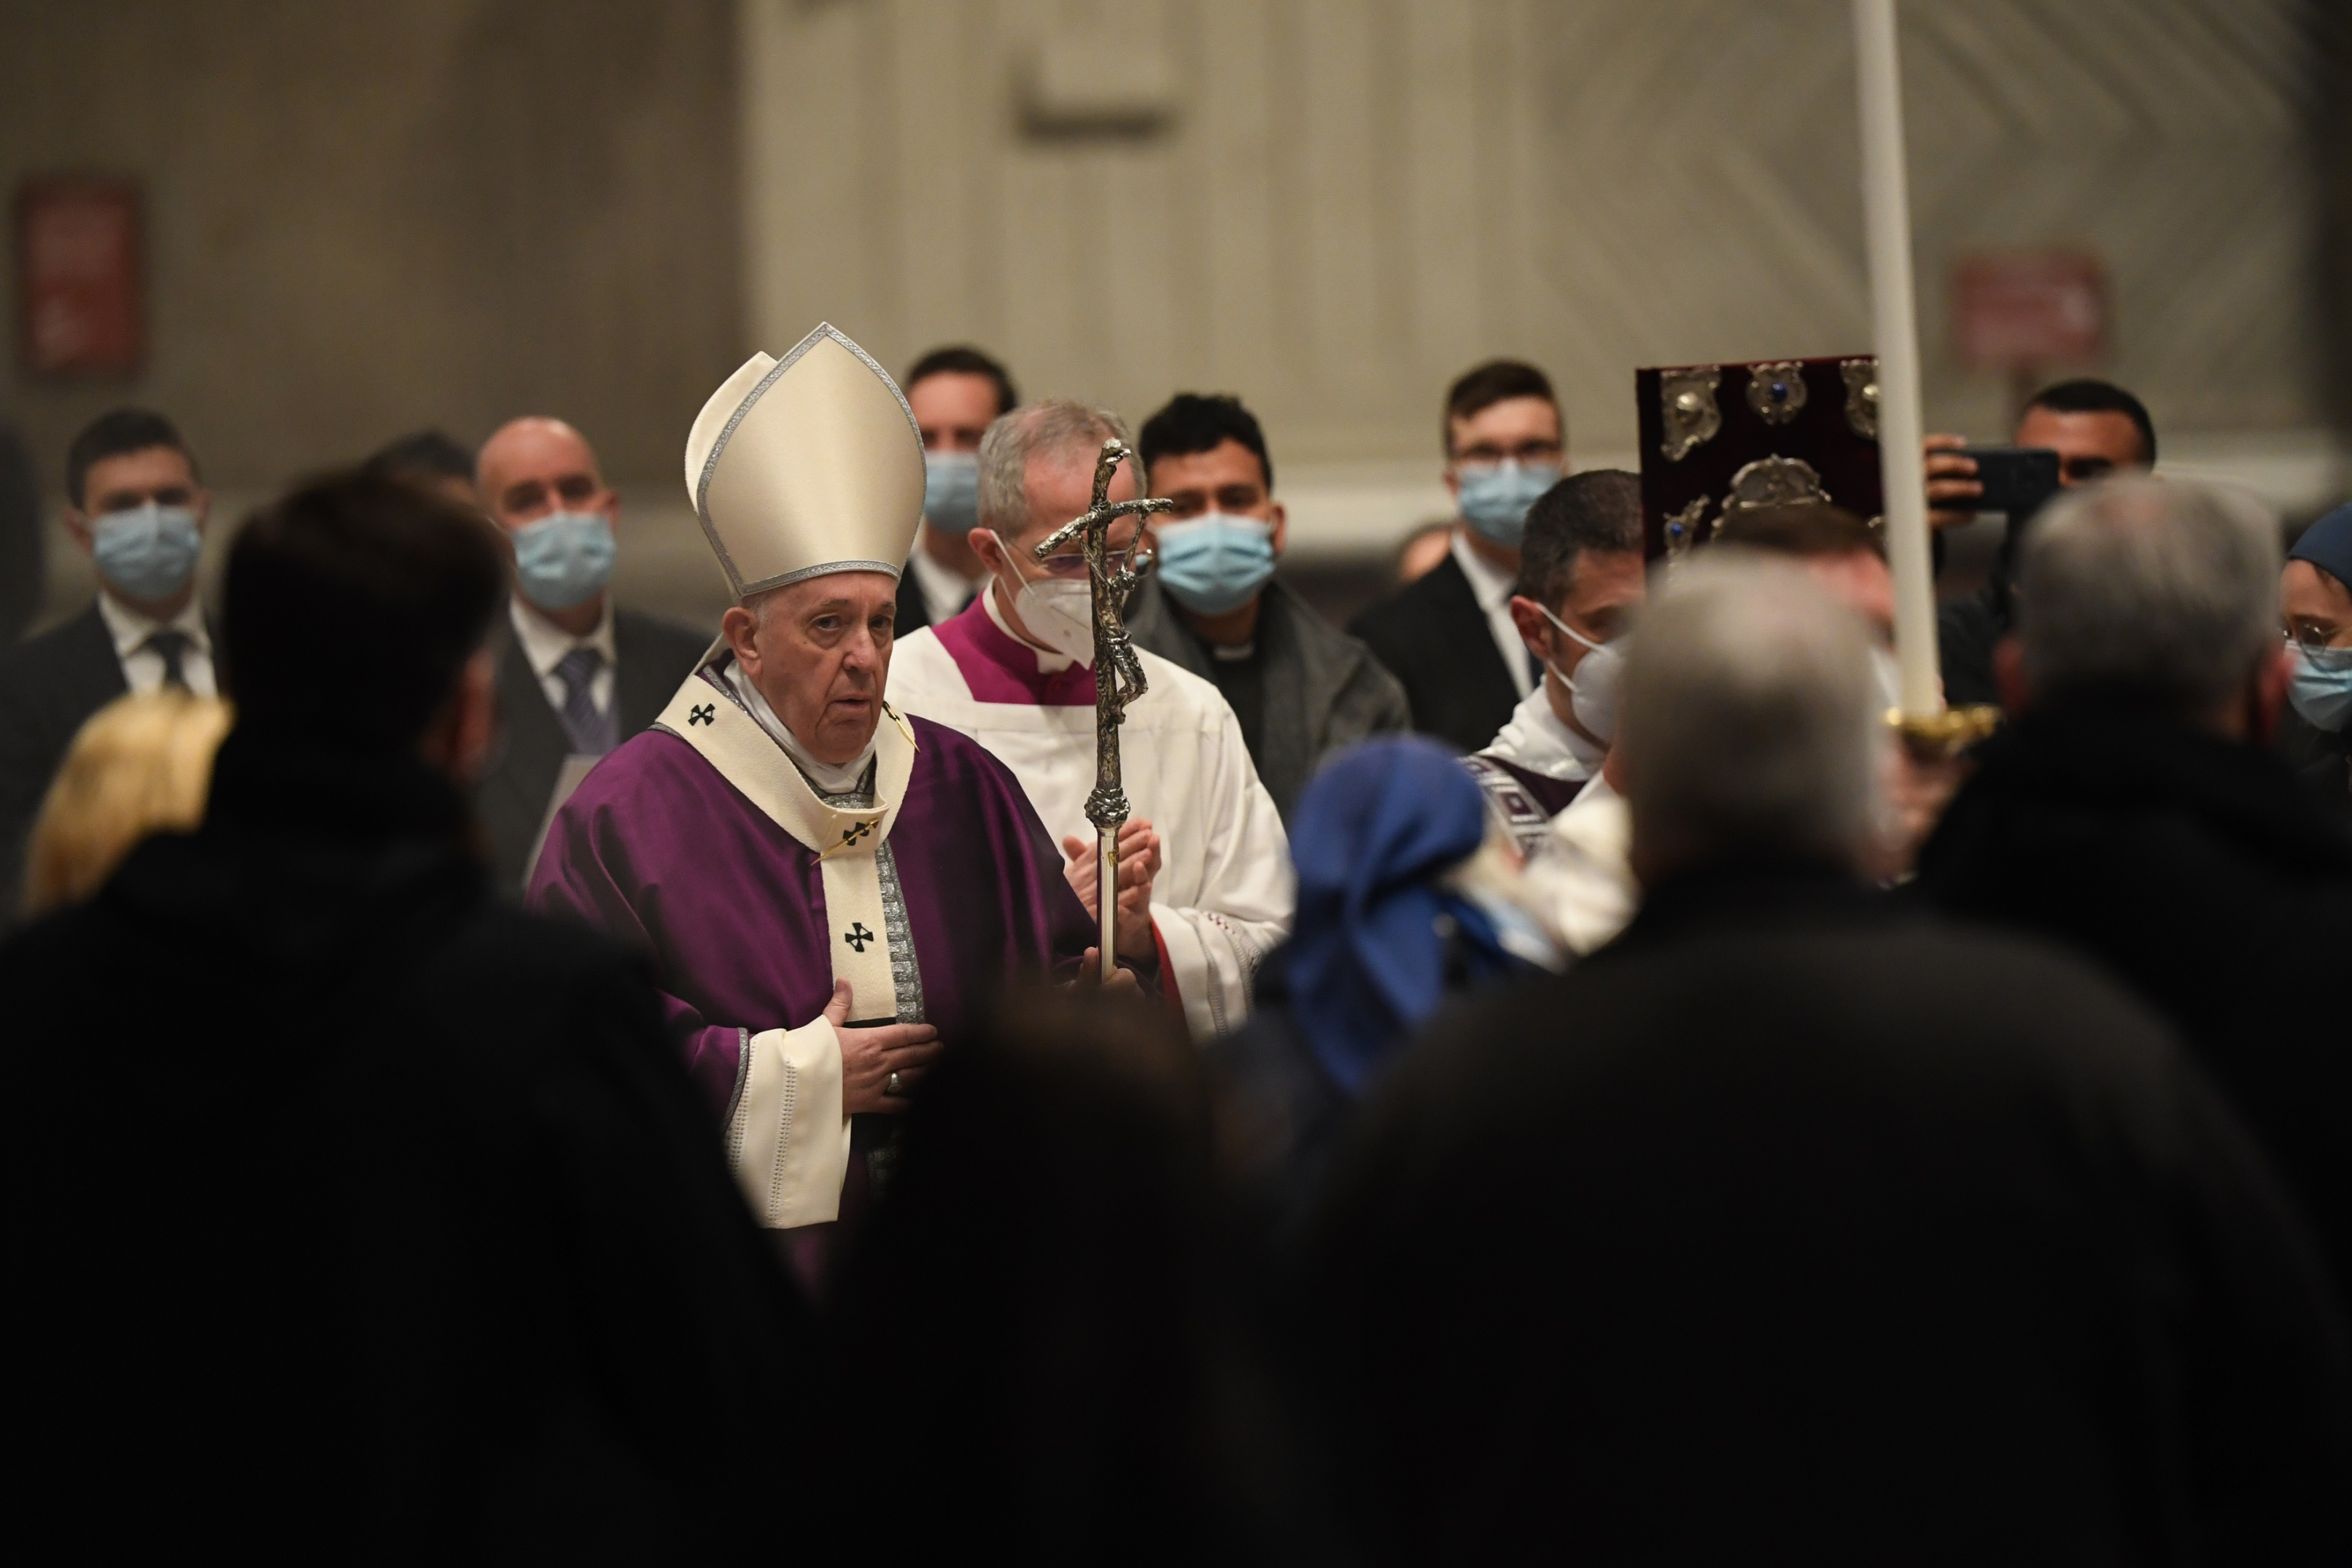 Bishop-elect Guido Marini walks beside Pope Francis on Ash Wednesday 2021 in St. Peter's Basilica